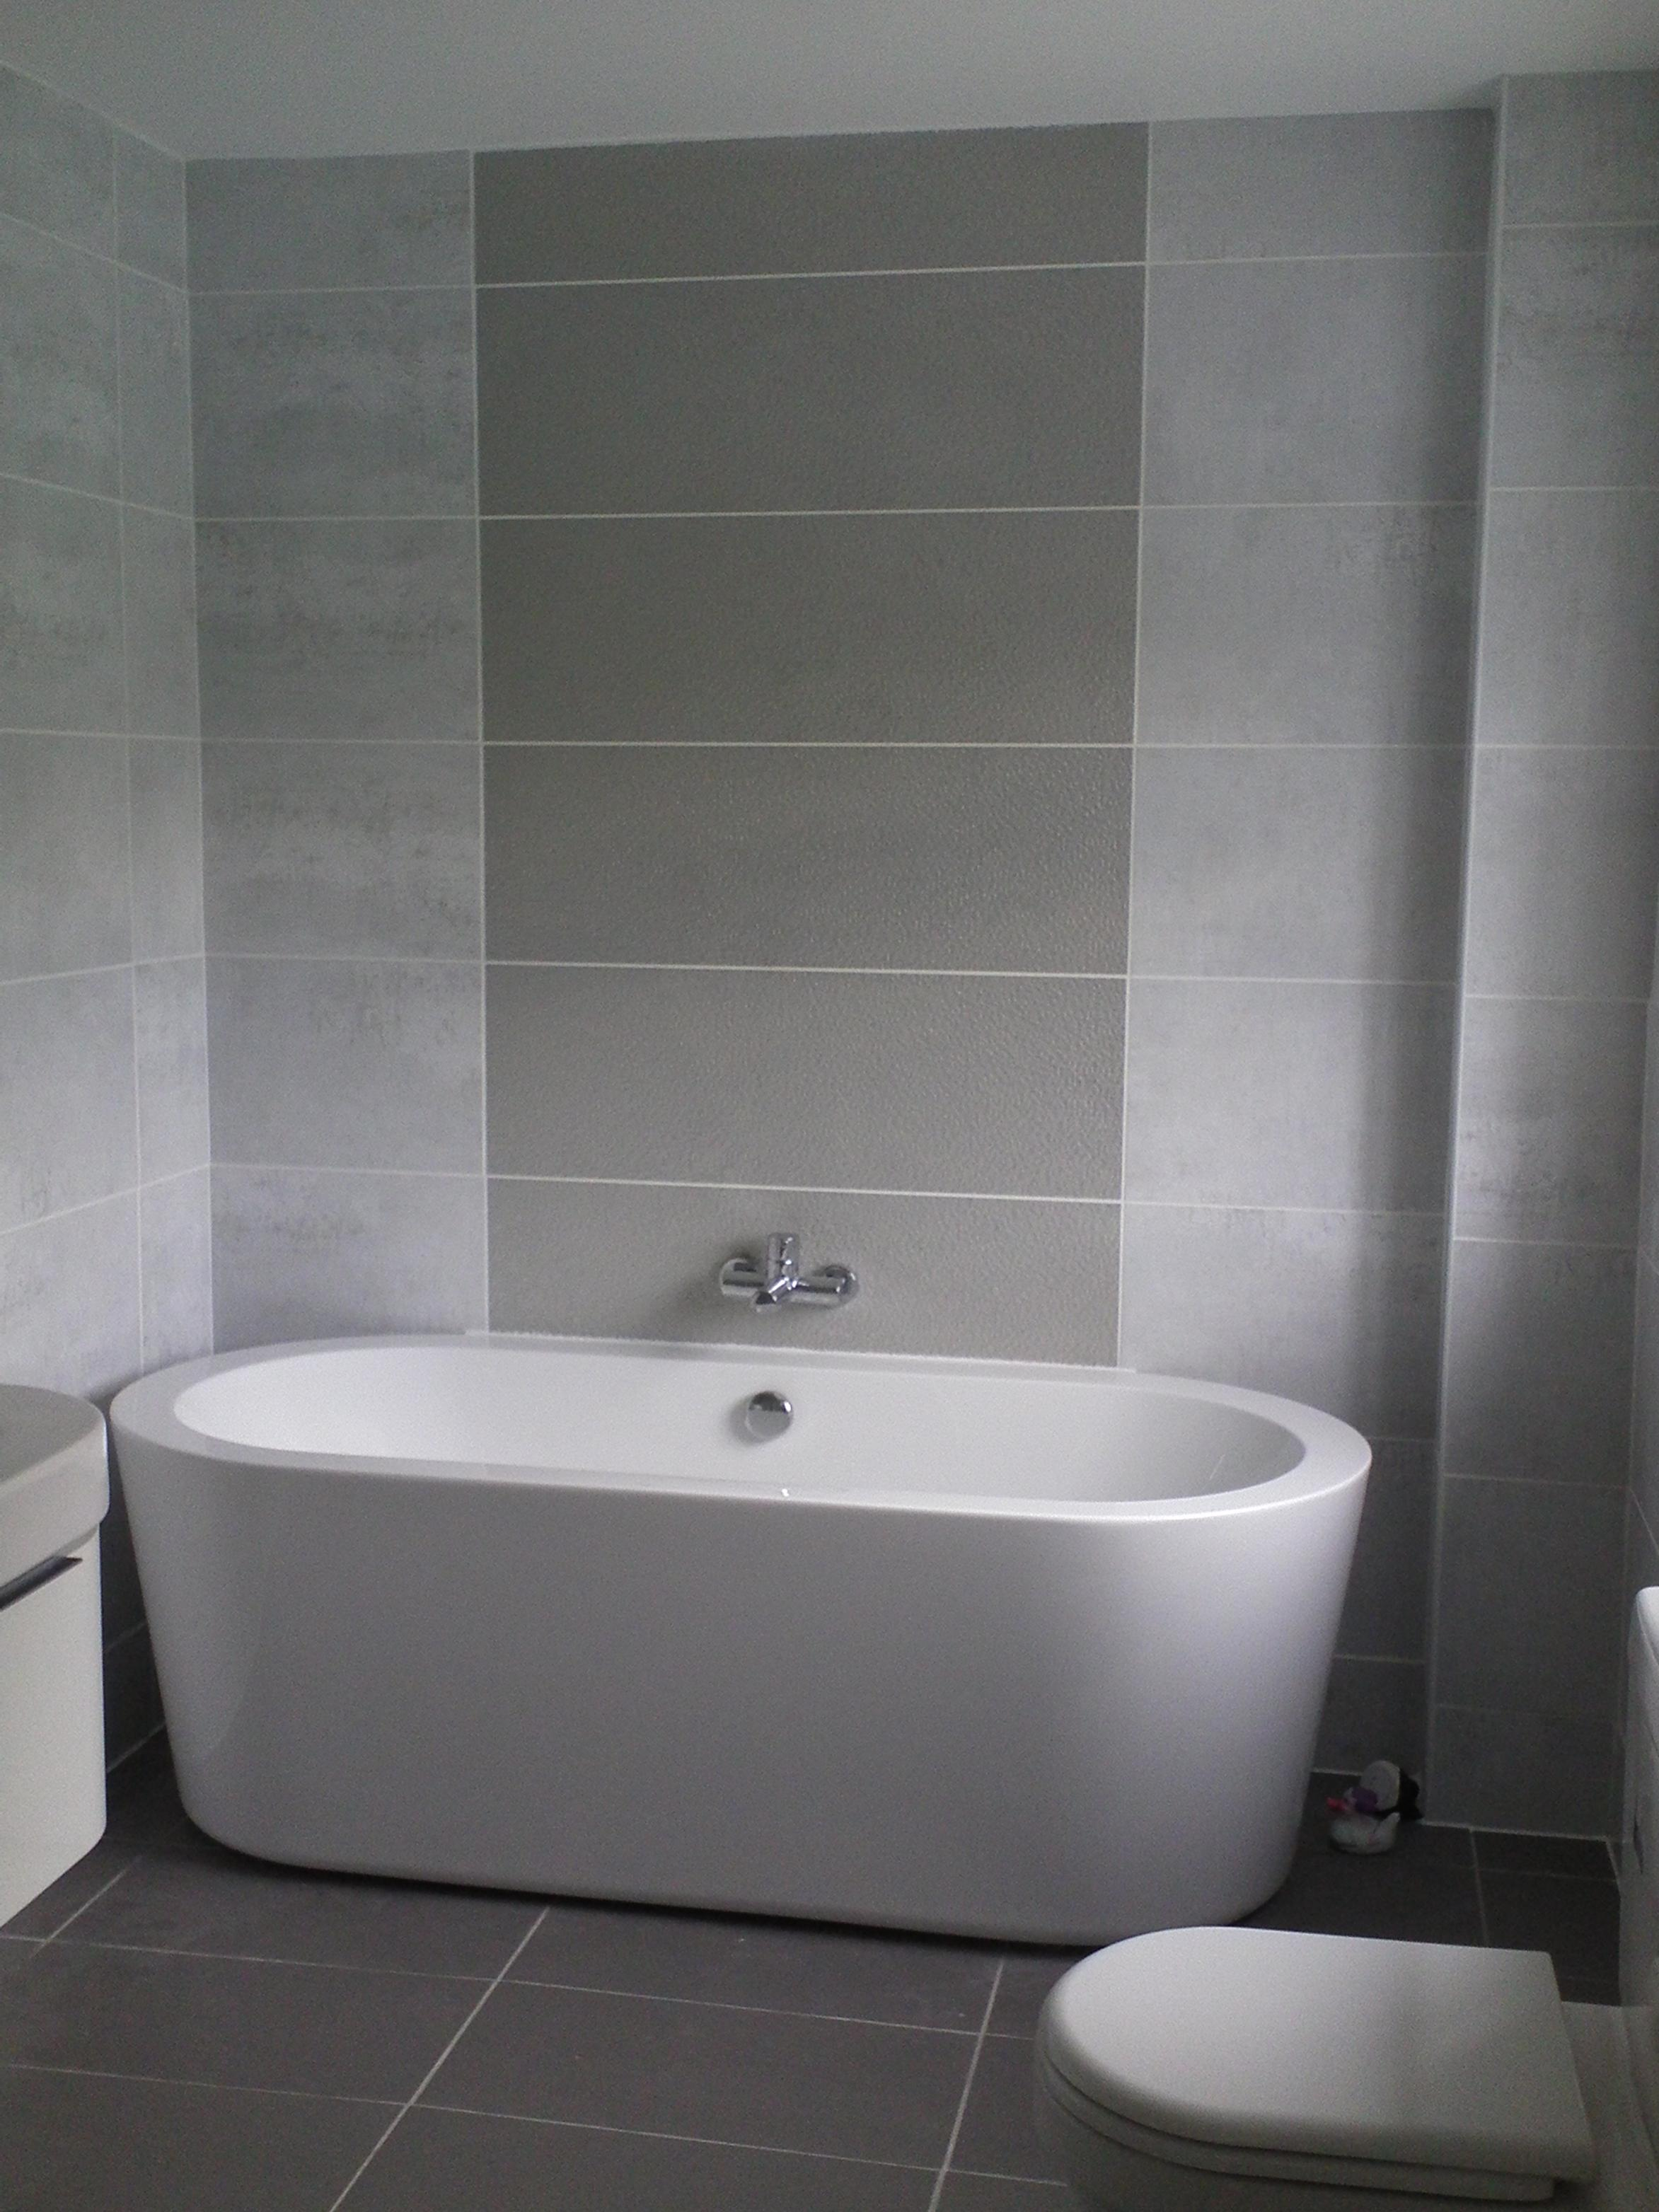 25 Grey Wall Tiles For Bathroom Ideas And Pictures